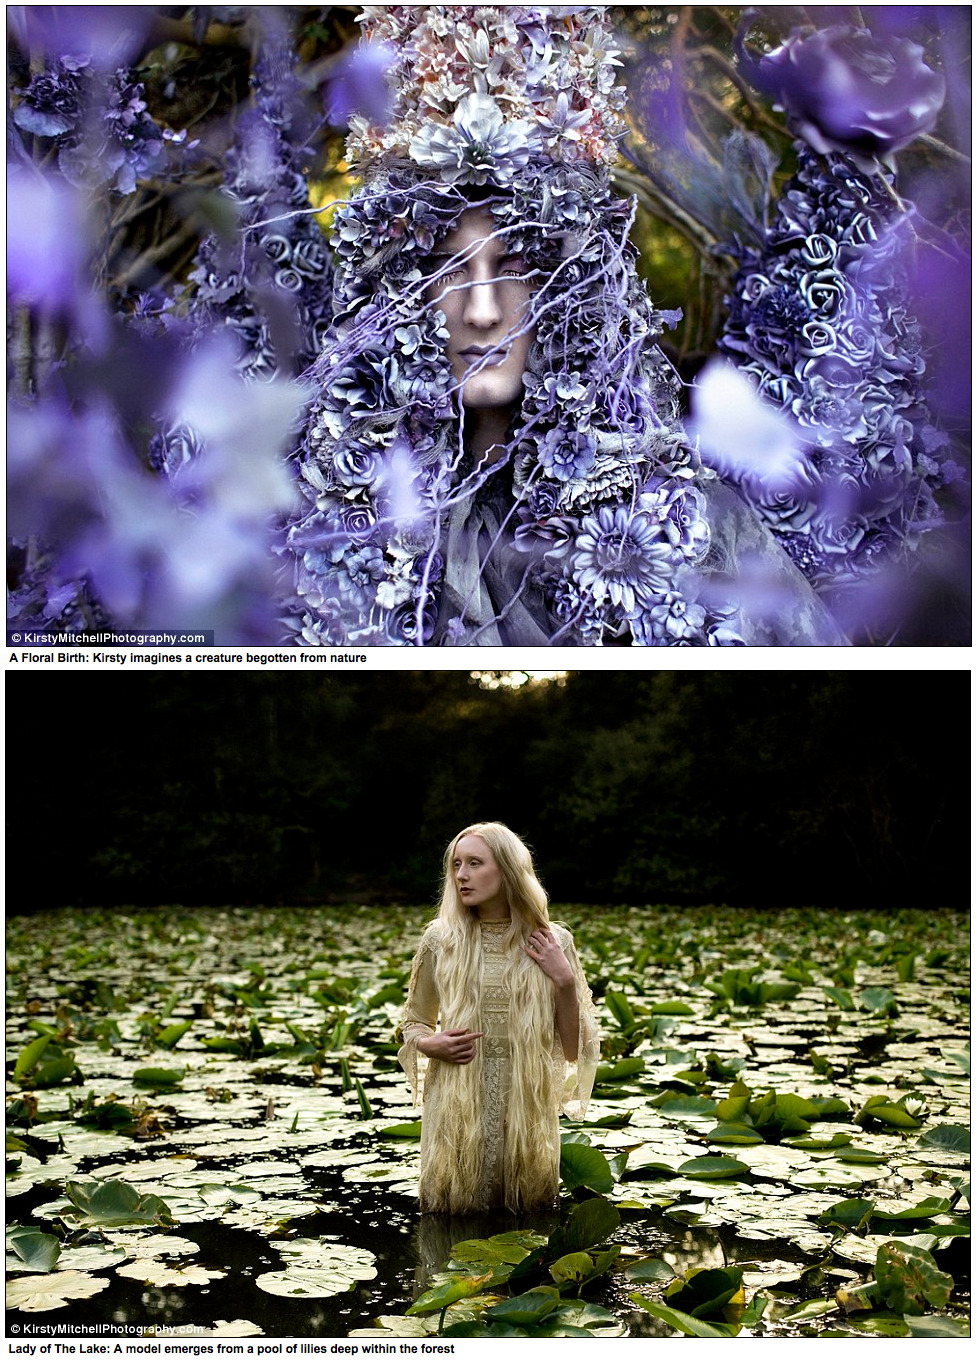 lagertha-lodbrok:  xharox:  kamdensl:  thestarlighthotel:  Kirsty Mitchell's late mother Maureen was an English teacher who spent her life inspiring generations of children with imaginative stories and plays. Following Maureen's death from a brain tumour in 2008, Kirsty channelled her grief into her passion for photography.  She retreated behind the lens of her camera and created Wonderland, an ethereal fantasy world. The photographic series began as a small summer project but grew into an inspirational creative journey.  'Real life became a difficult place to deal with, and I found myself retreating further into an alternative existence through the portal of my camera,' said the artist. (read the rest here).   These photos are absolutely stunning.  A perfect way to honor the memory of her mother.  I bet she'd love these photos.   So breath taking!   holy shit this is so moving